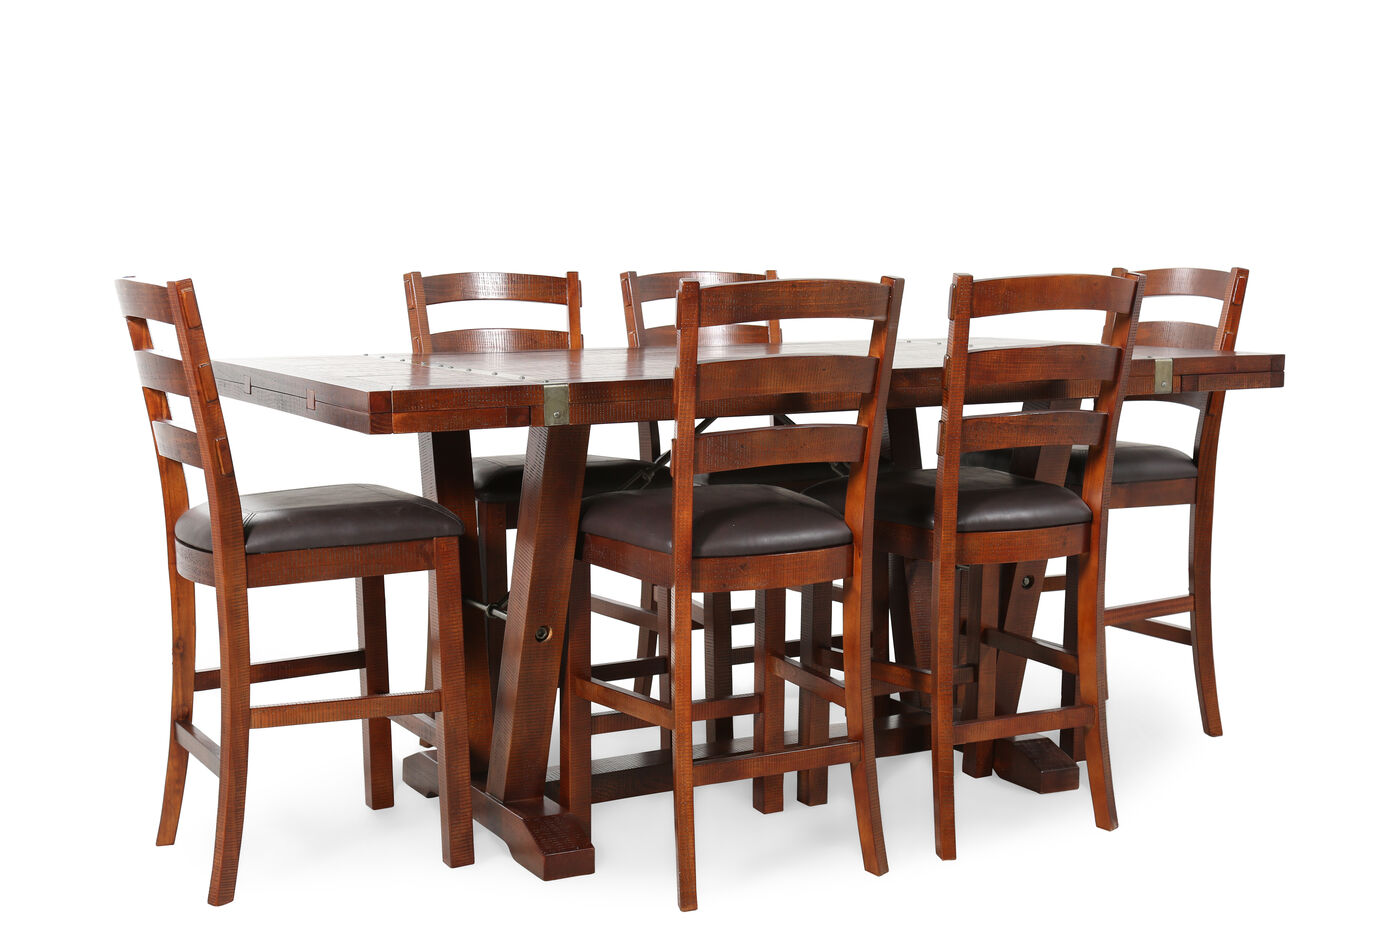 Ashley Gavelston Six Piece Dining Set By Dining Room  : HHF 1710PUB102 from www.elivingroomfurniture.com size 1400 x 933 jpeg 141kB